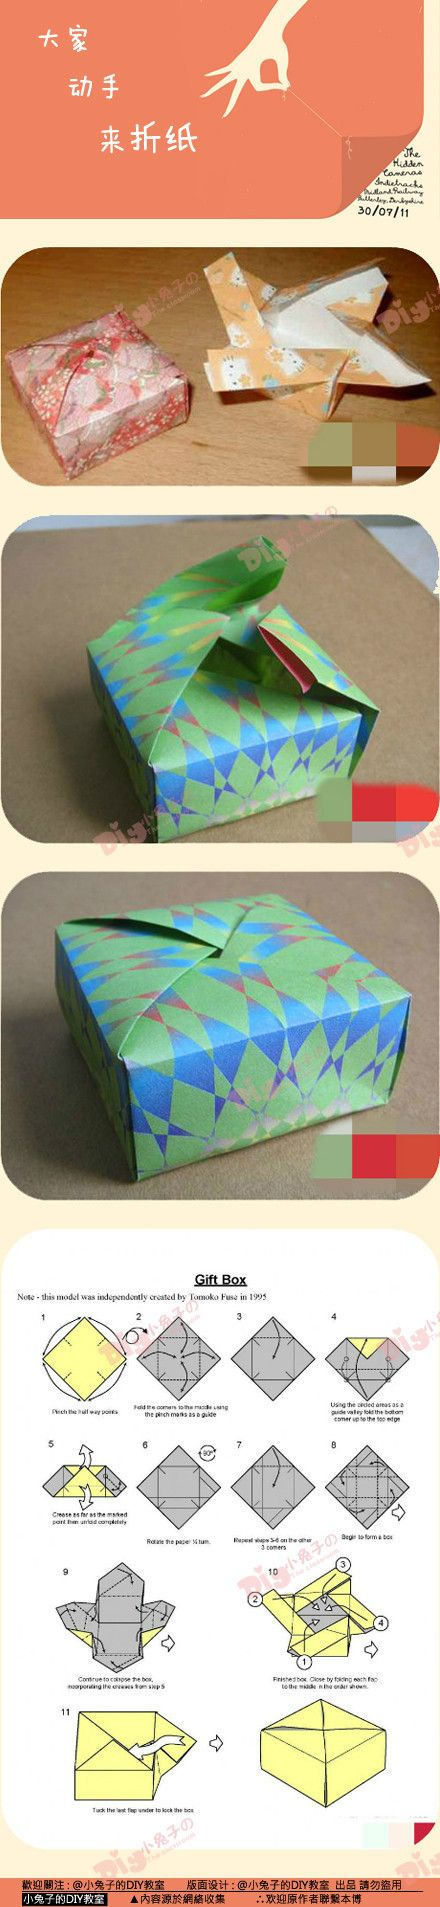 one piece origami box, looks easy huh!?